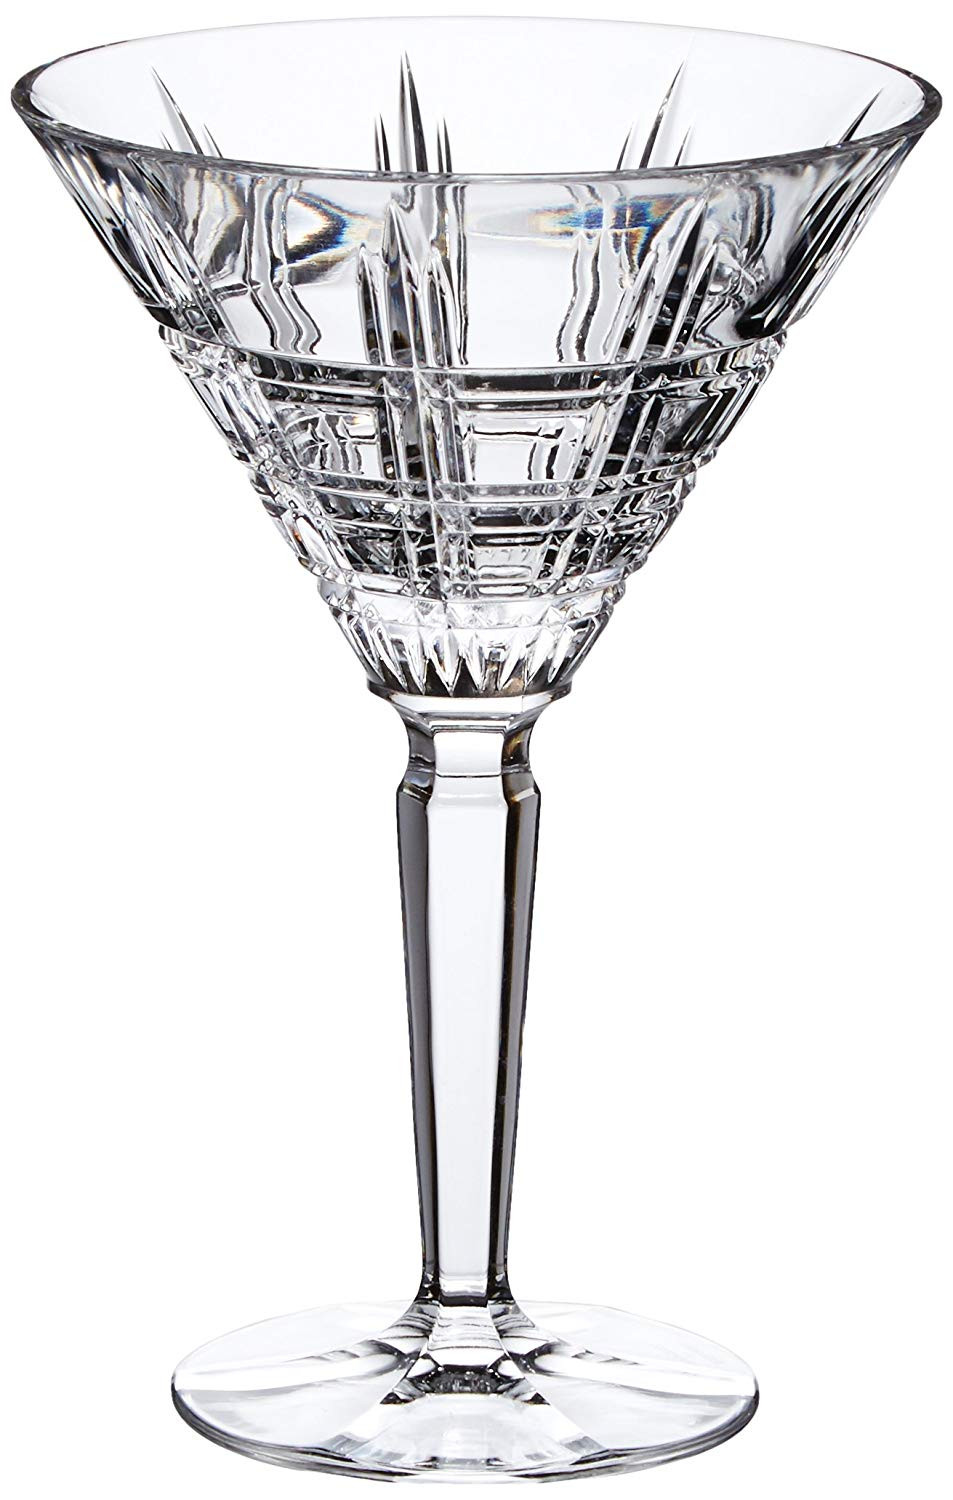 marquis by waterford 9 markham vase of amazon com marquis by waterford crosby hiball clear set of 4 inside amazon com marquis by waterford crosby hiball clear set of 4 glassware drinkware